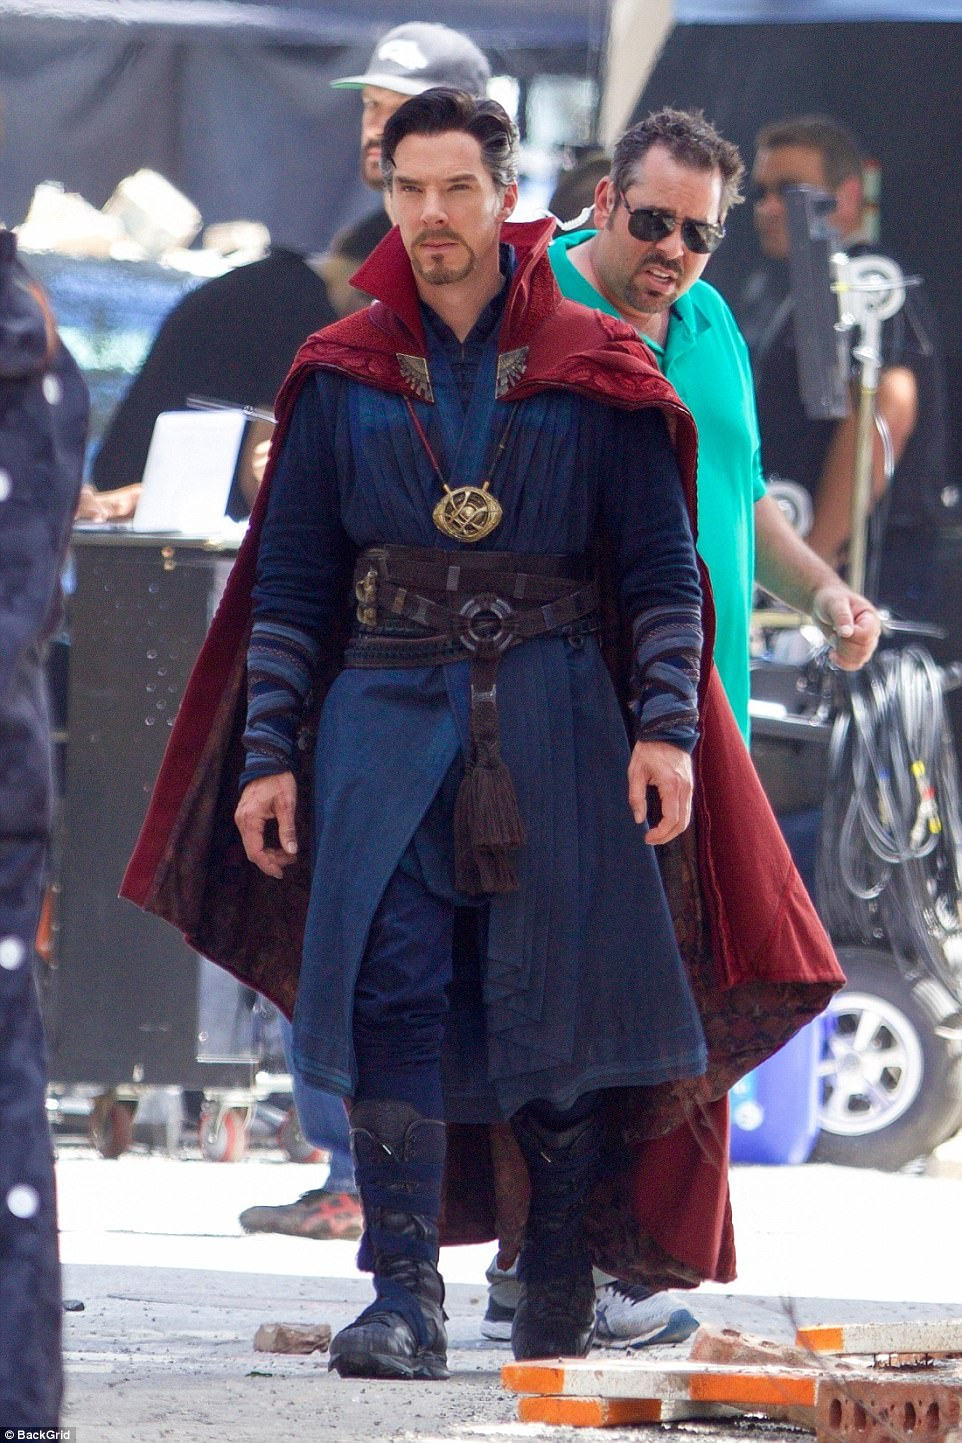 The boys are back in town: Benedict Cumberbatch was back as Doctor Strange on Monday as filming resumed for next Marvel flick Avengers: Infinity War